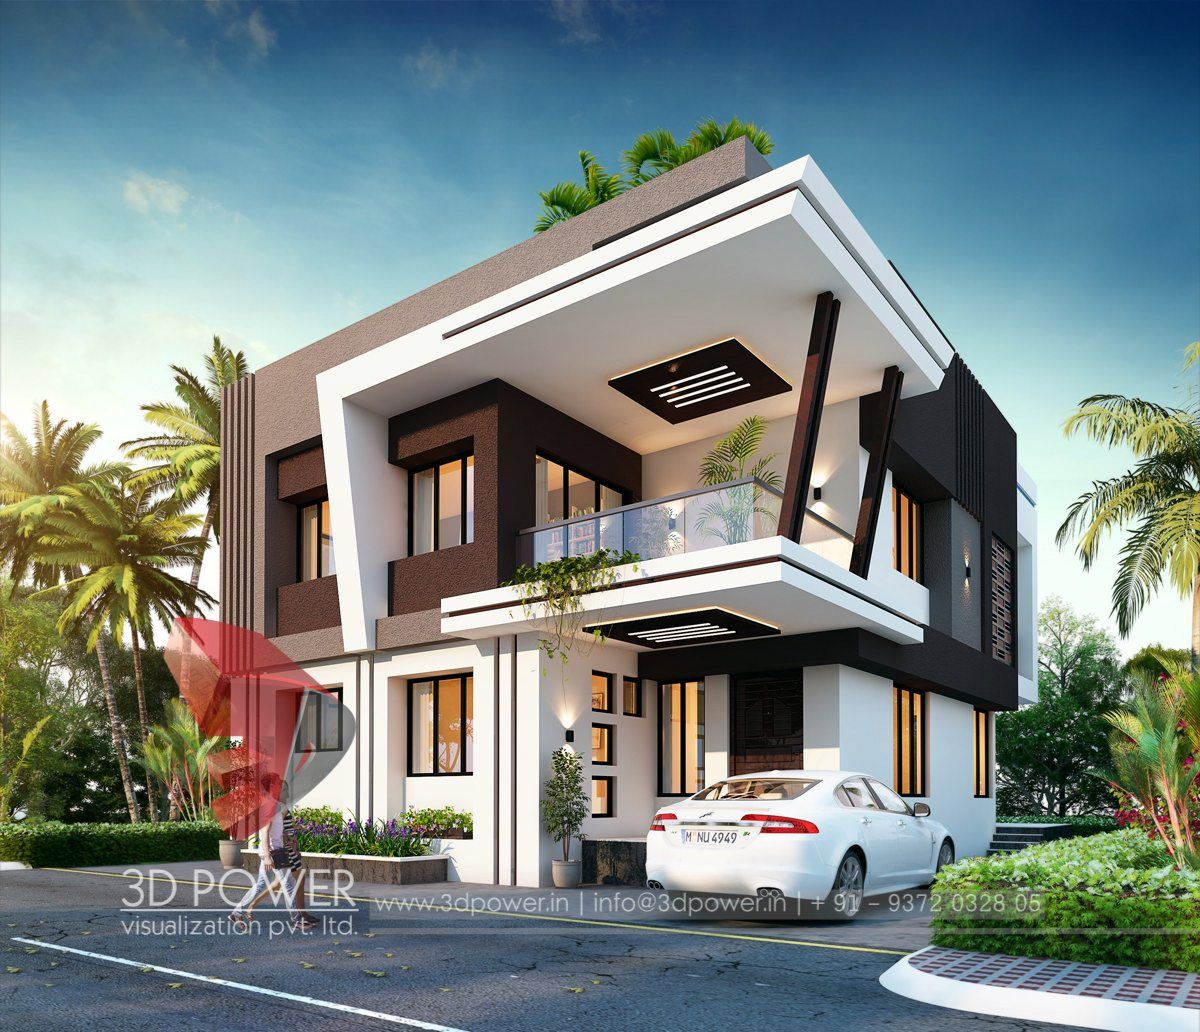 Ultramodernbungalowdesigns We Are Known For Designing A Wonderful Place In The World That Is One S In 2020 Duplex House Design Bungalow Design Bungalow House Design